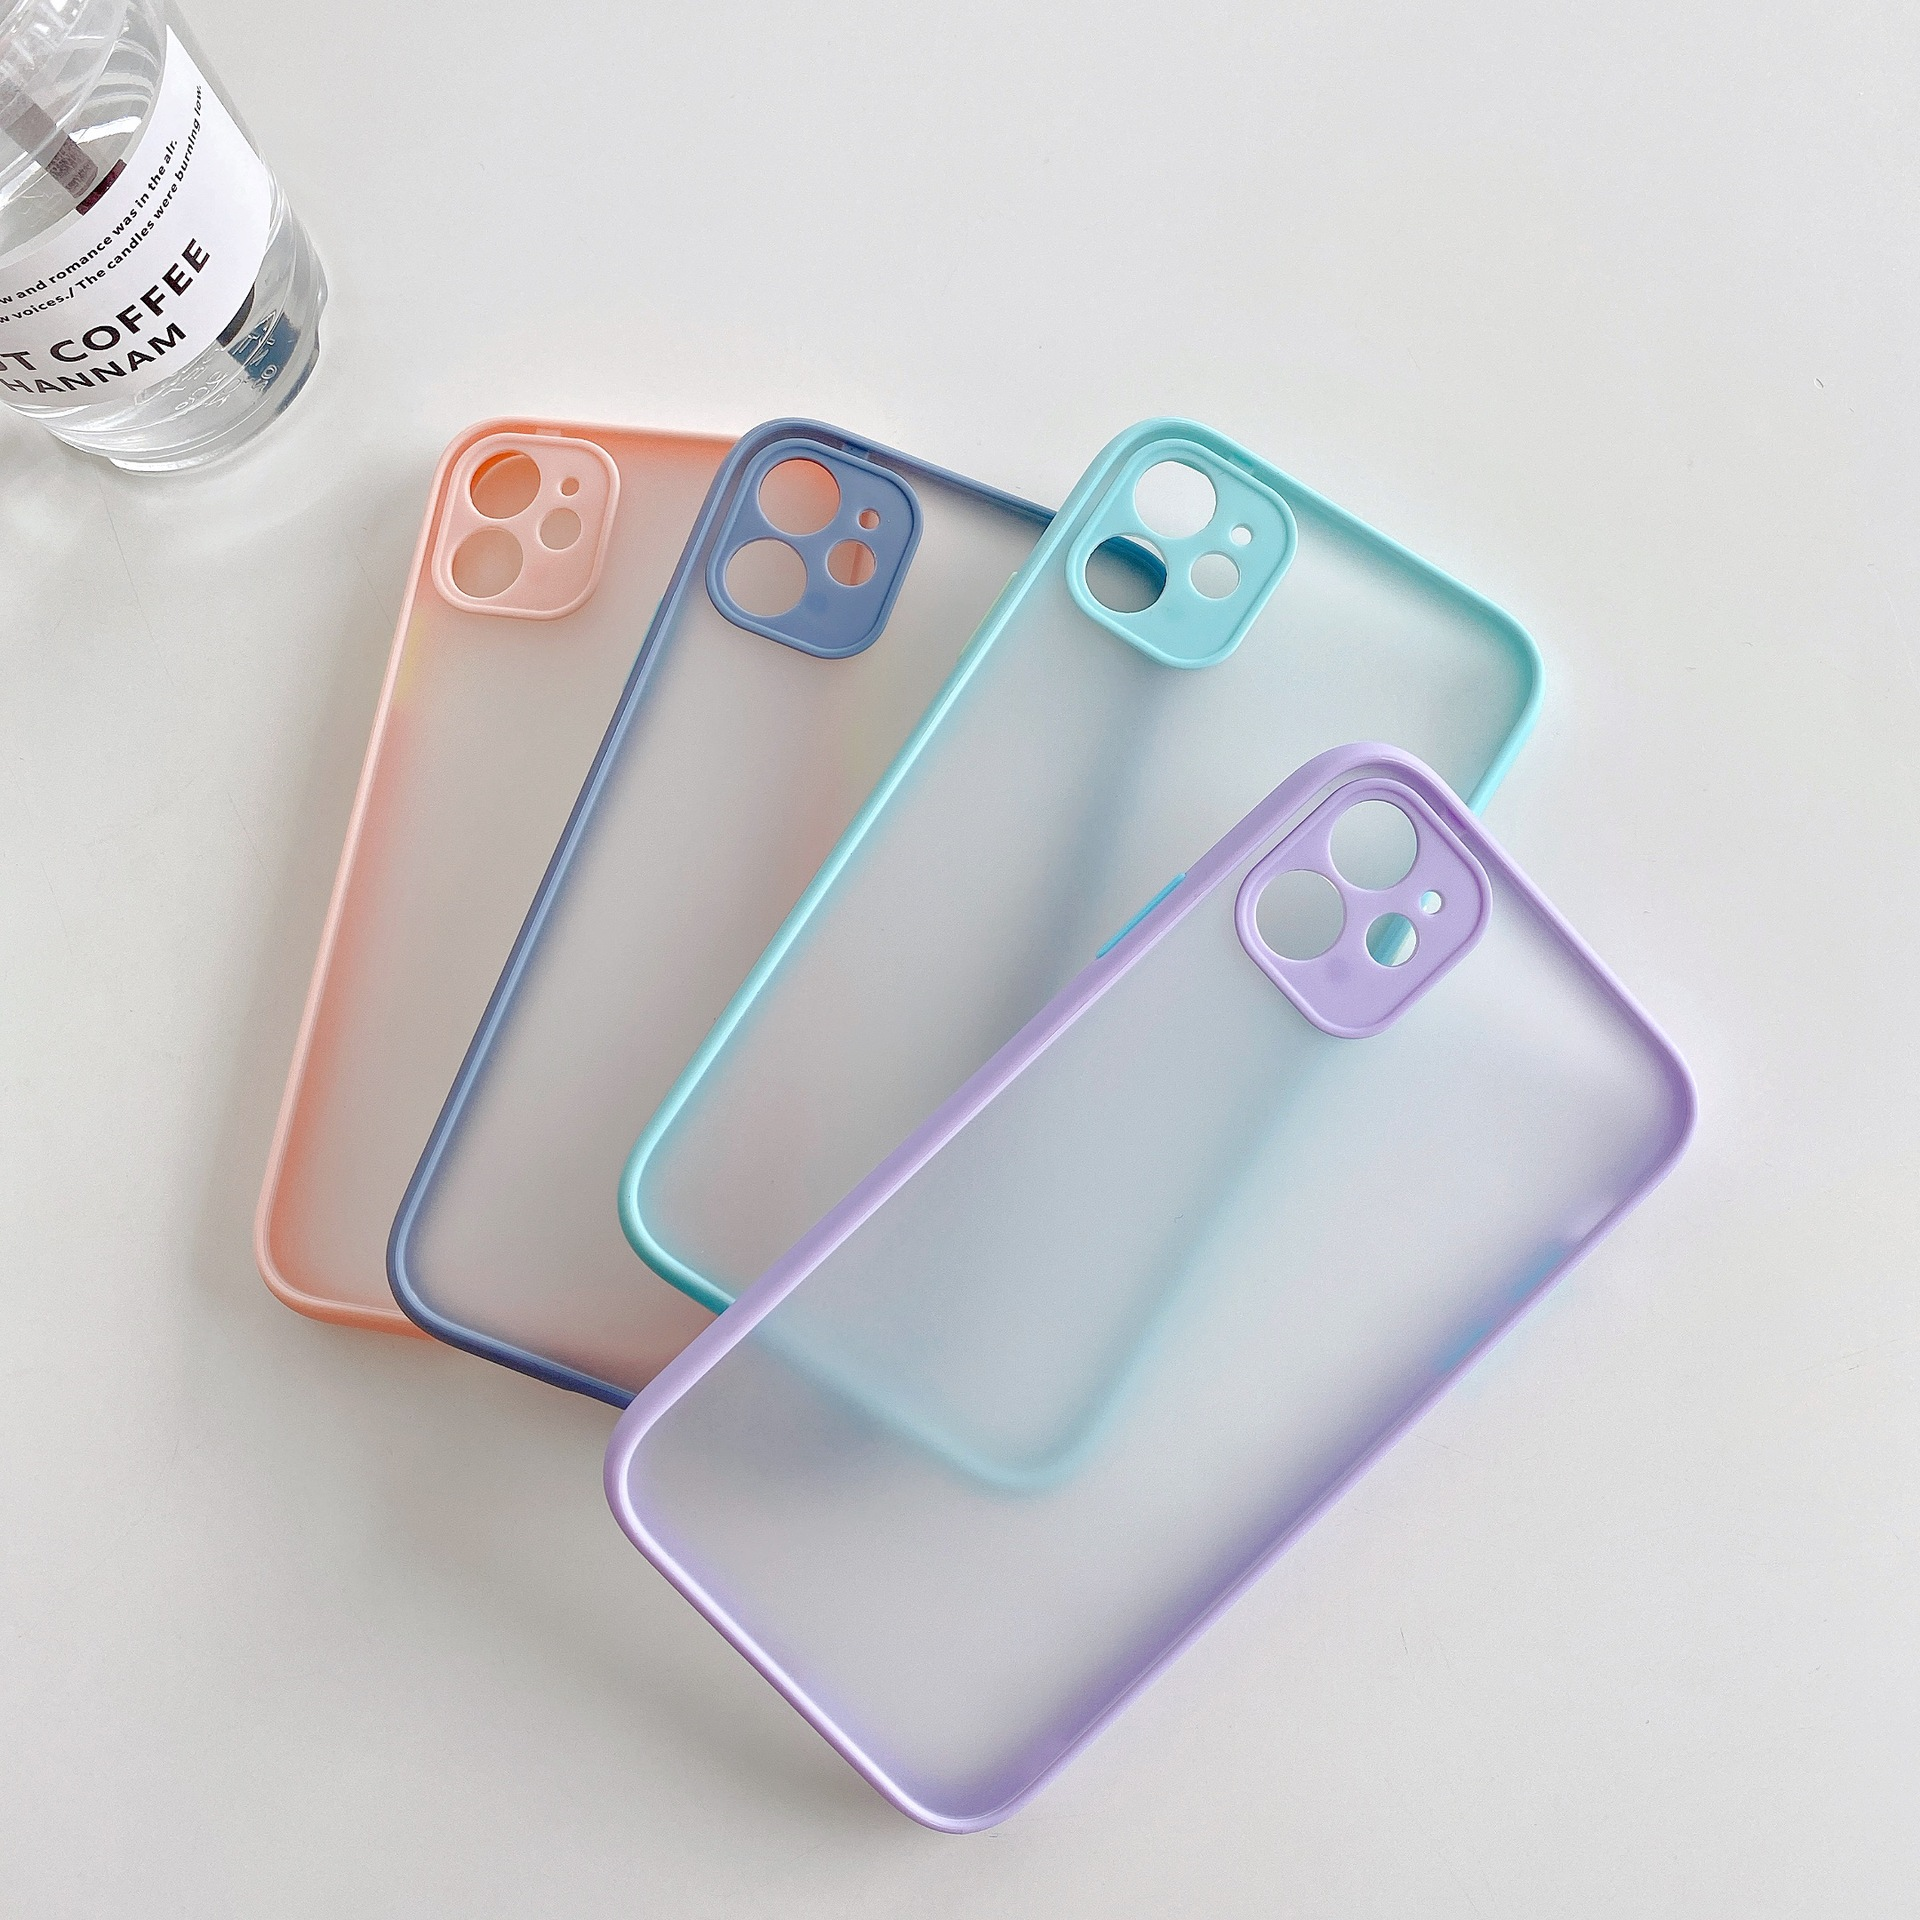 Design Colourful Phone case cover hull For iphone 4 4s 5 5S SE 5C 6 6S 7 8 plus X XS XR 11 PRO MAX 2020 black coque tpu